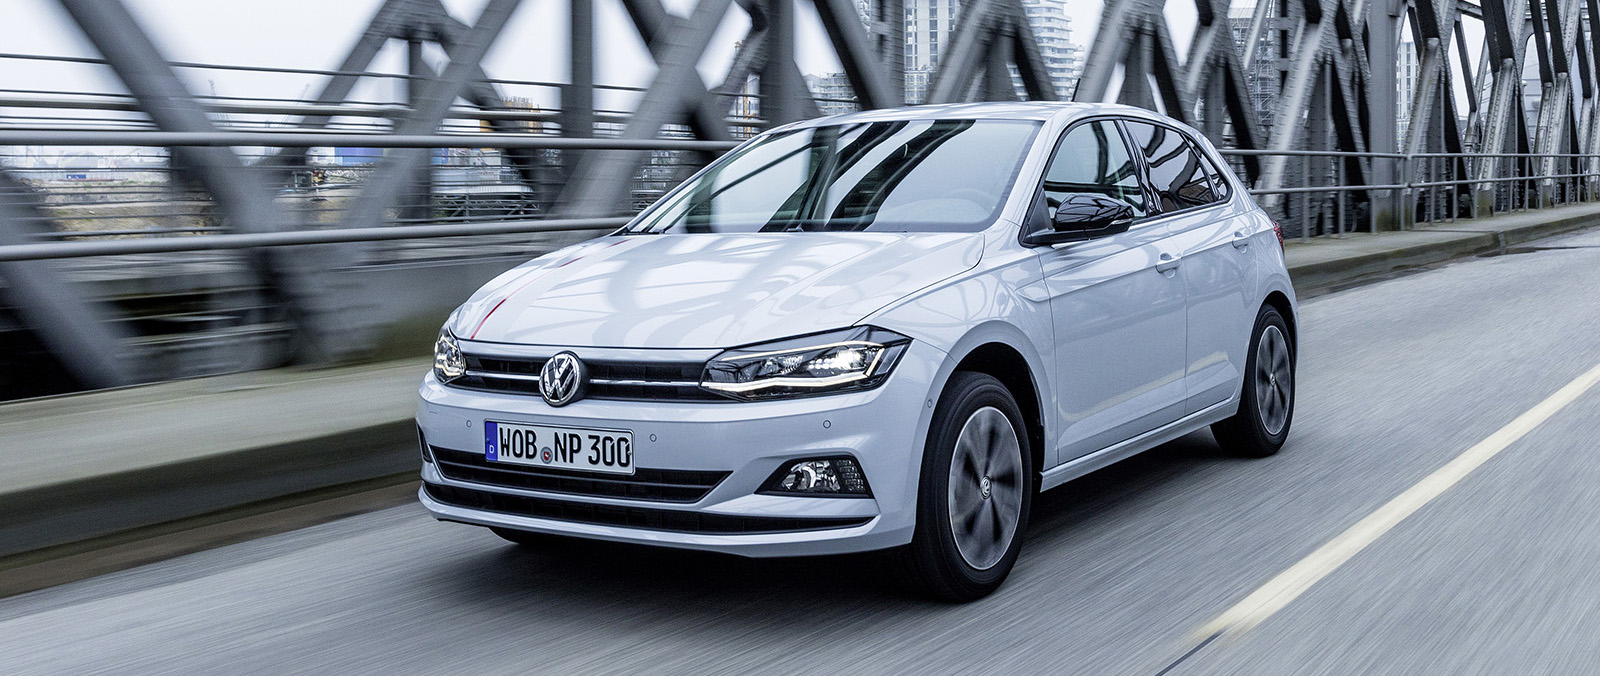 Dit is de Volkswagen Polo Beats